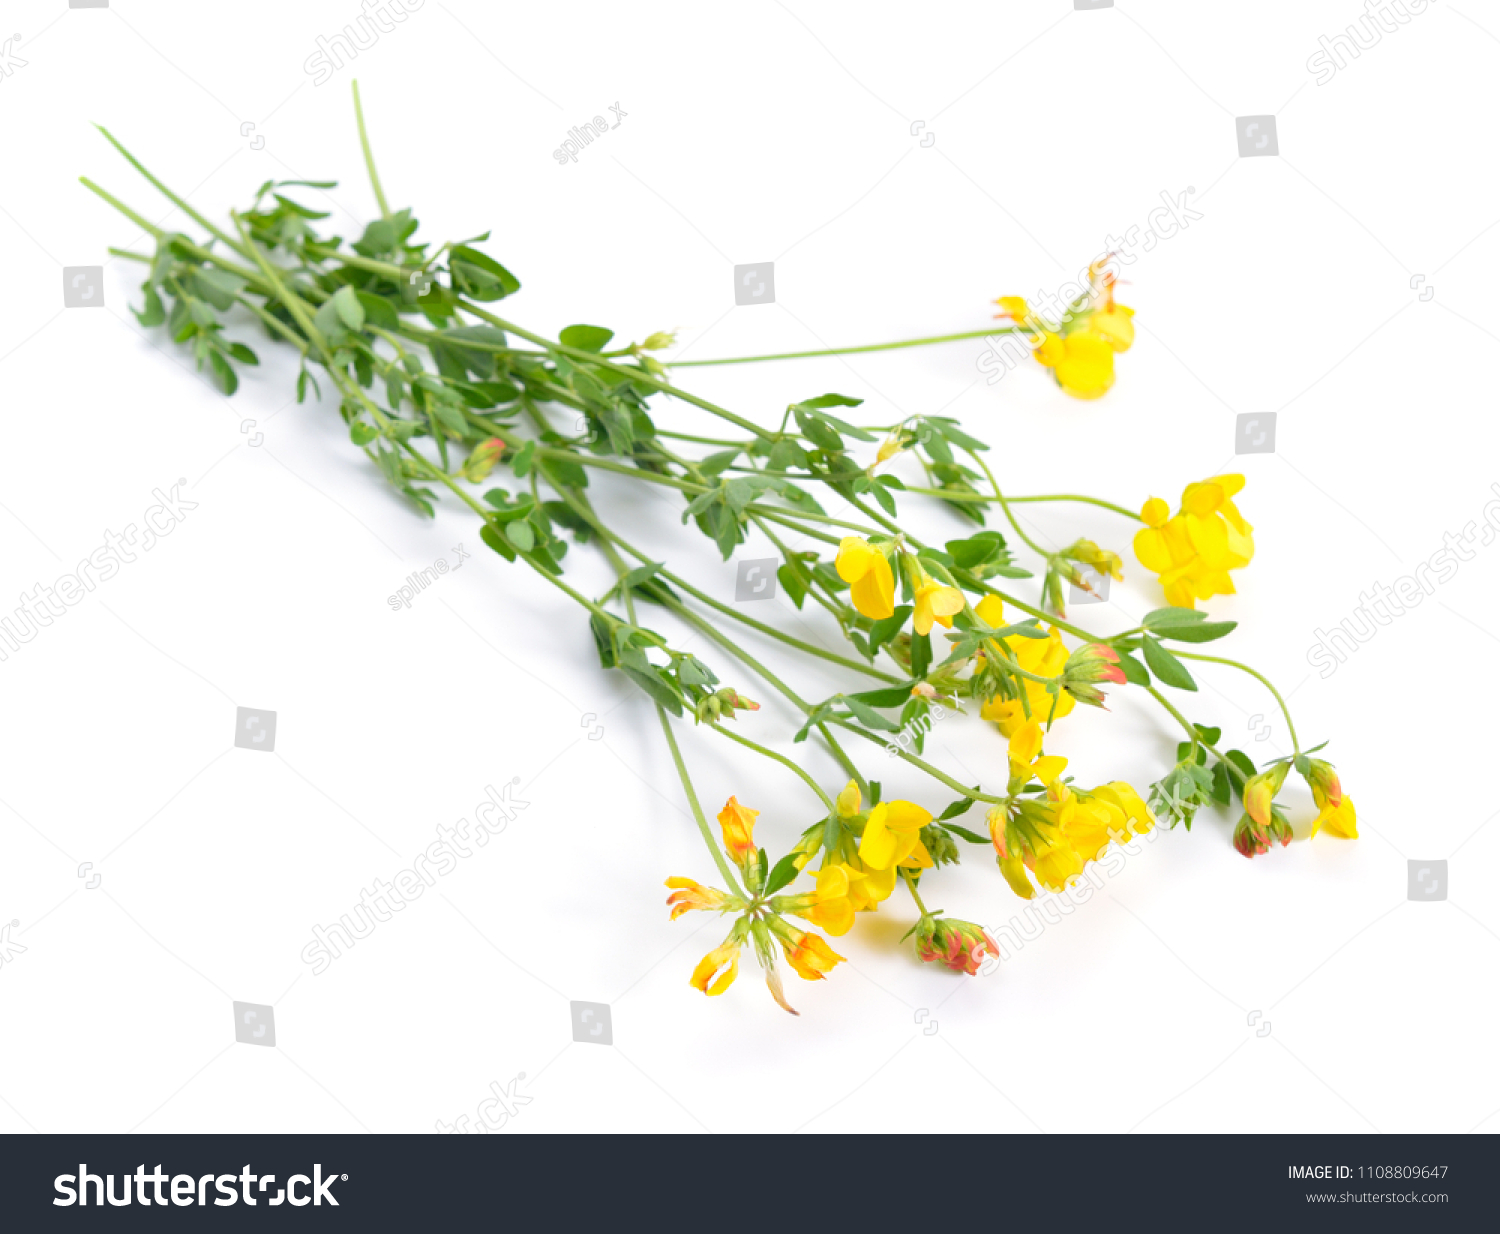 Medicago Falcata Common Names Include Yellow Stock Photo Edit Now